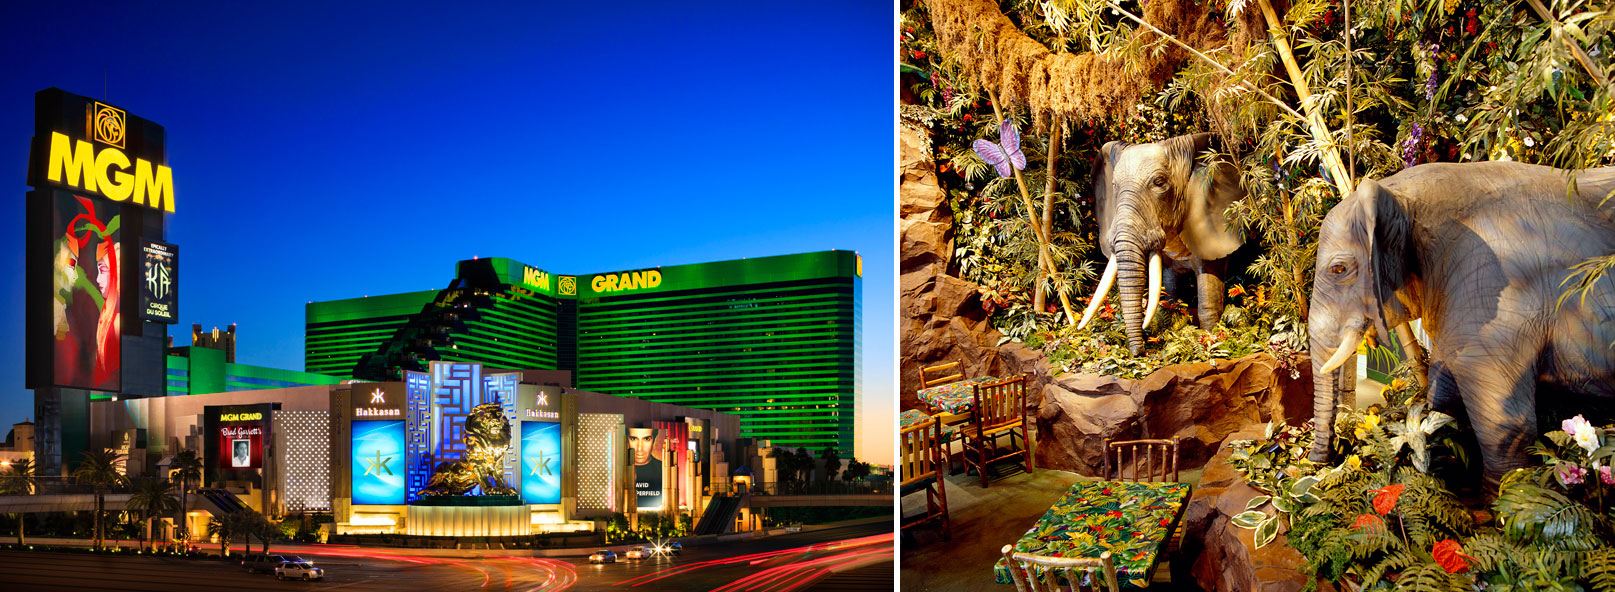 MGM Grand exterior and Rainforest Cafe